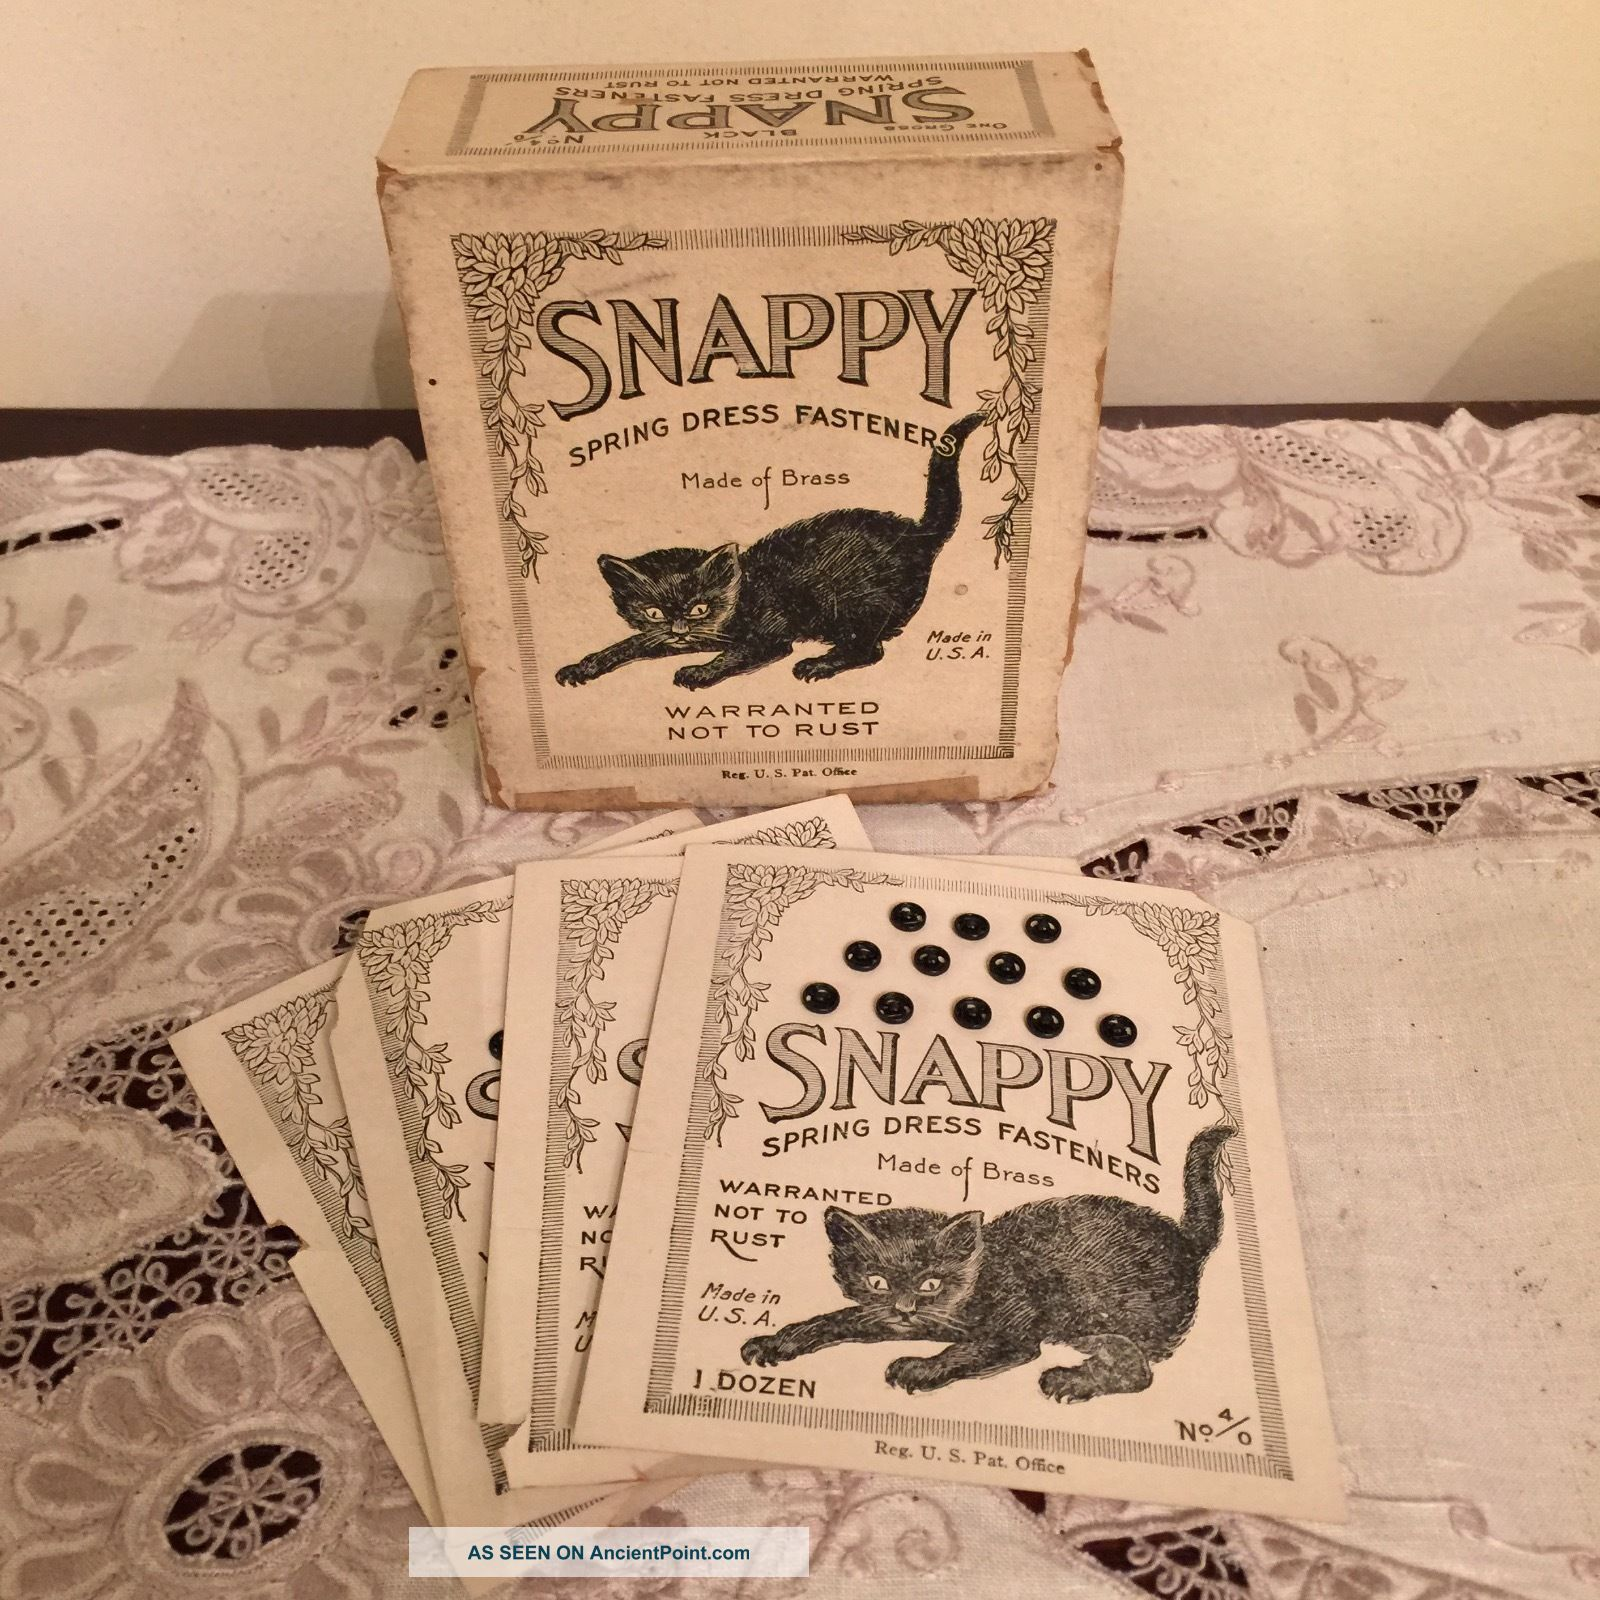 Antique Black Cat Snappy Dress Fastener Sewing Box Paper Kitten Advertising Other Antique Sewing photo